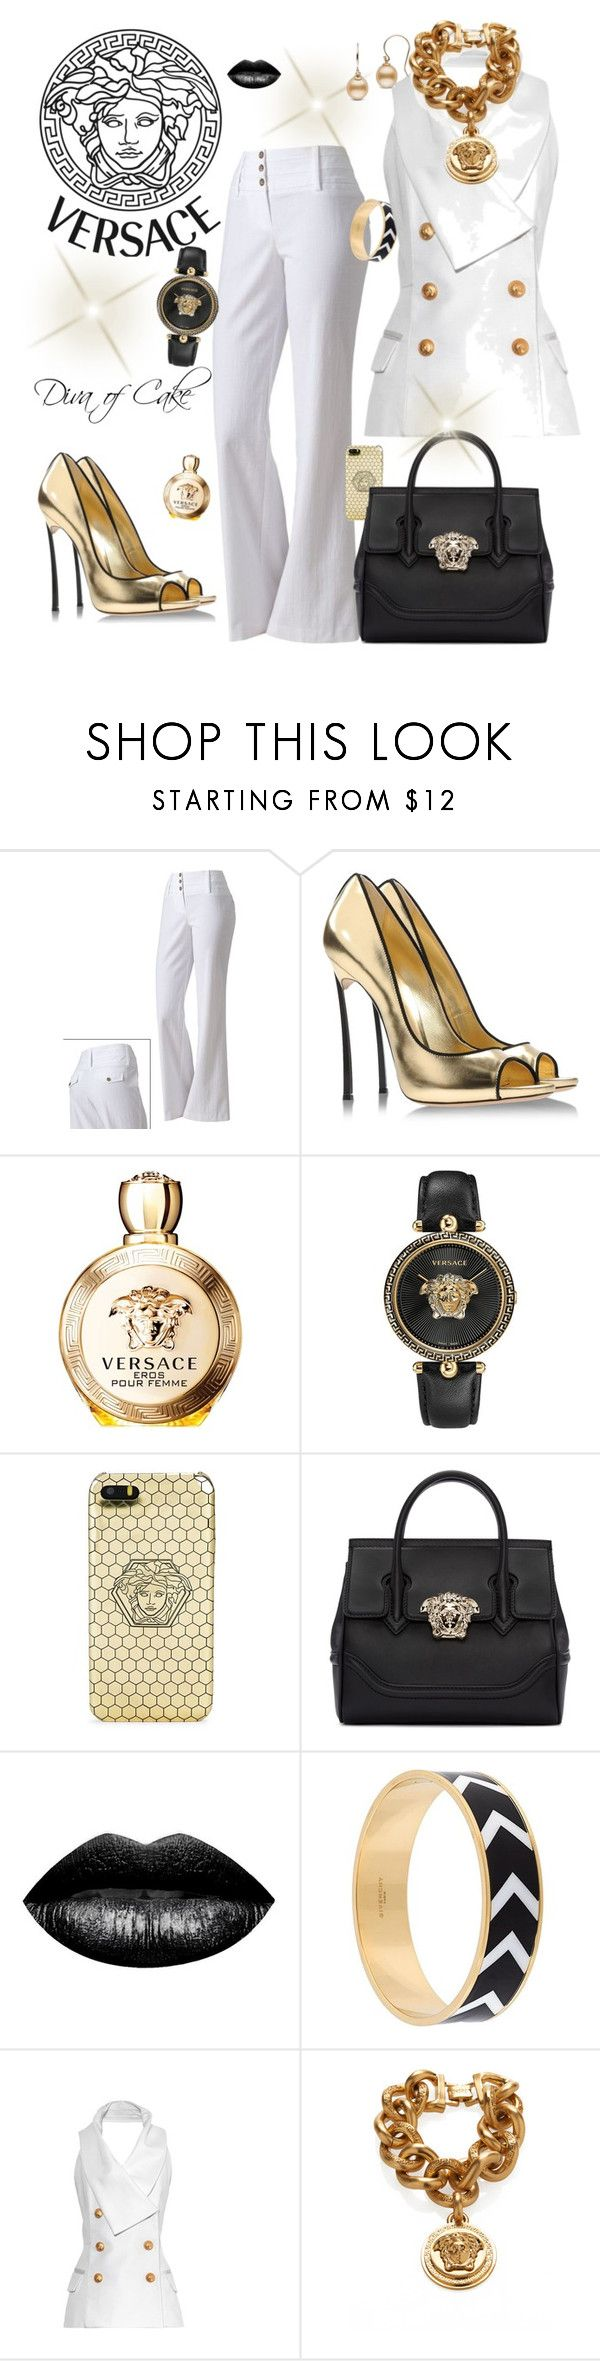 """Versace White black and gold outfit"" by Diva of Cake on Polyvore featuring Byer California, Casadei, Versace, The Lip Bar, Givenchy and Balmain"